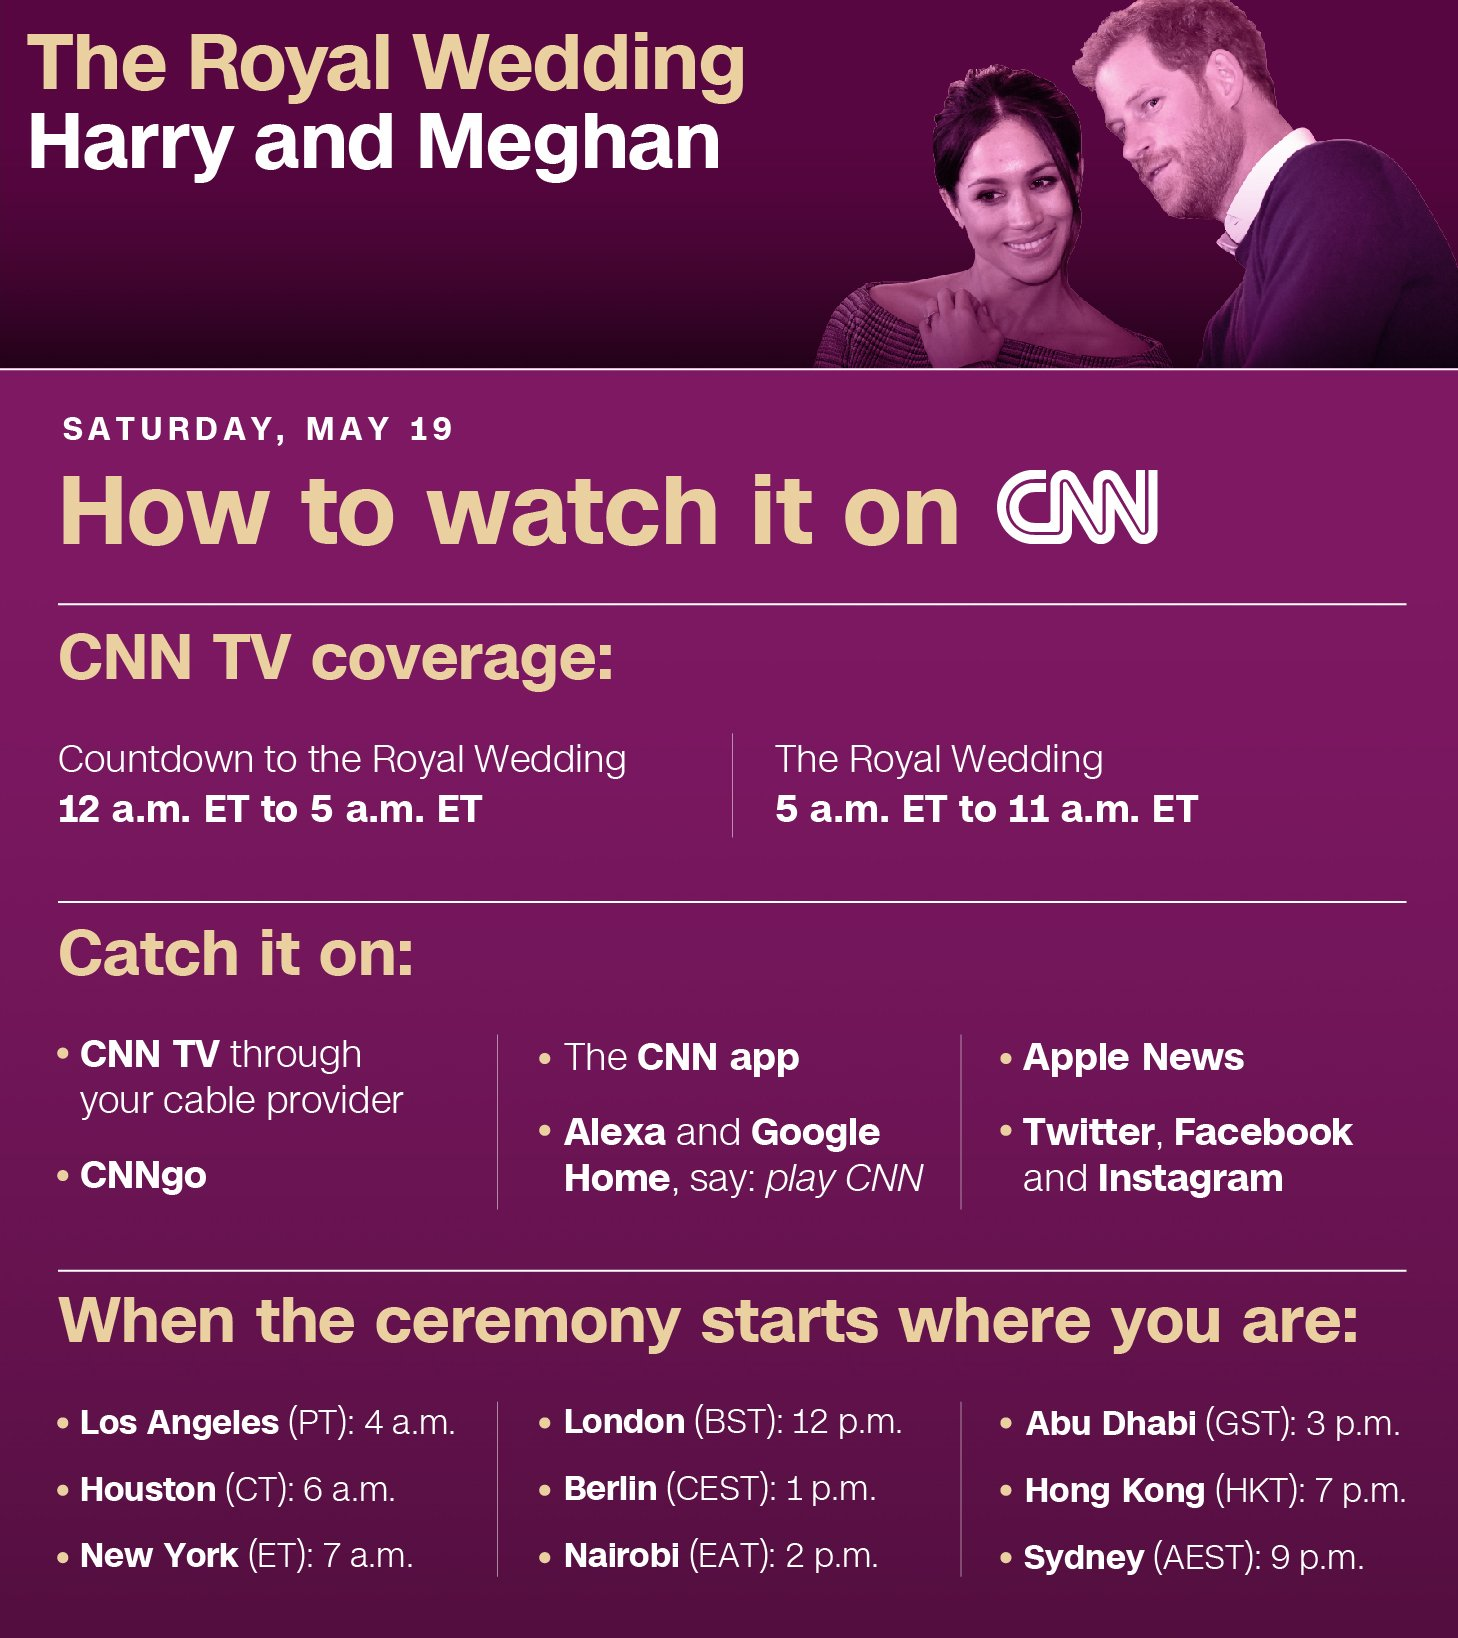 How to watch the #royalwedding https://t.co/7Oh6hqLHOc https://t.co/kSe8WhgXS3